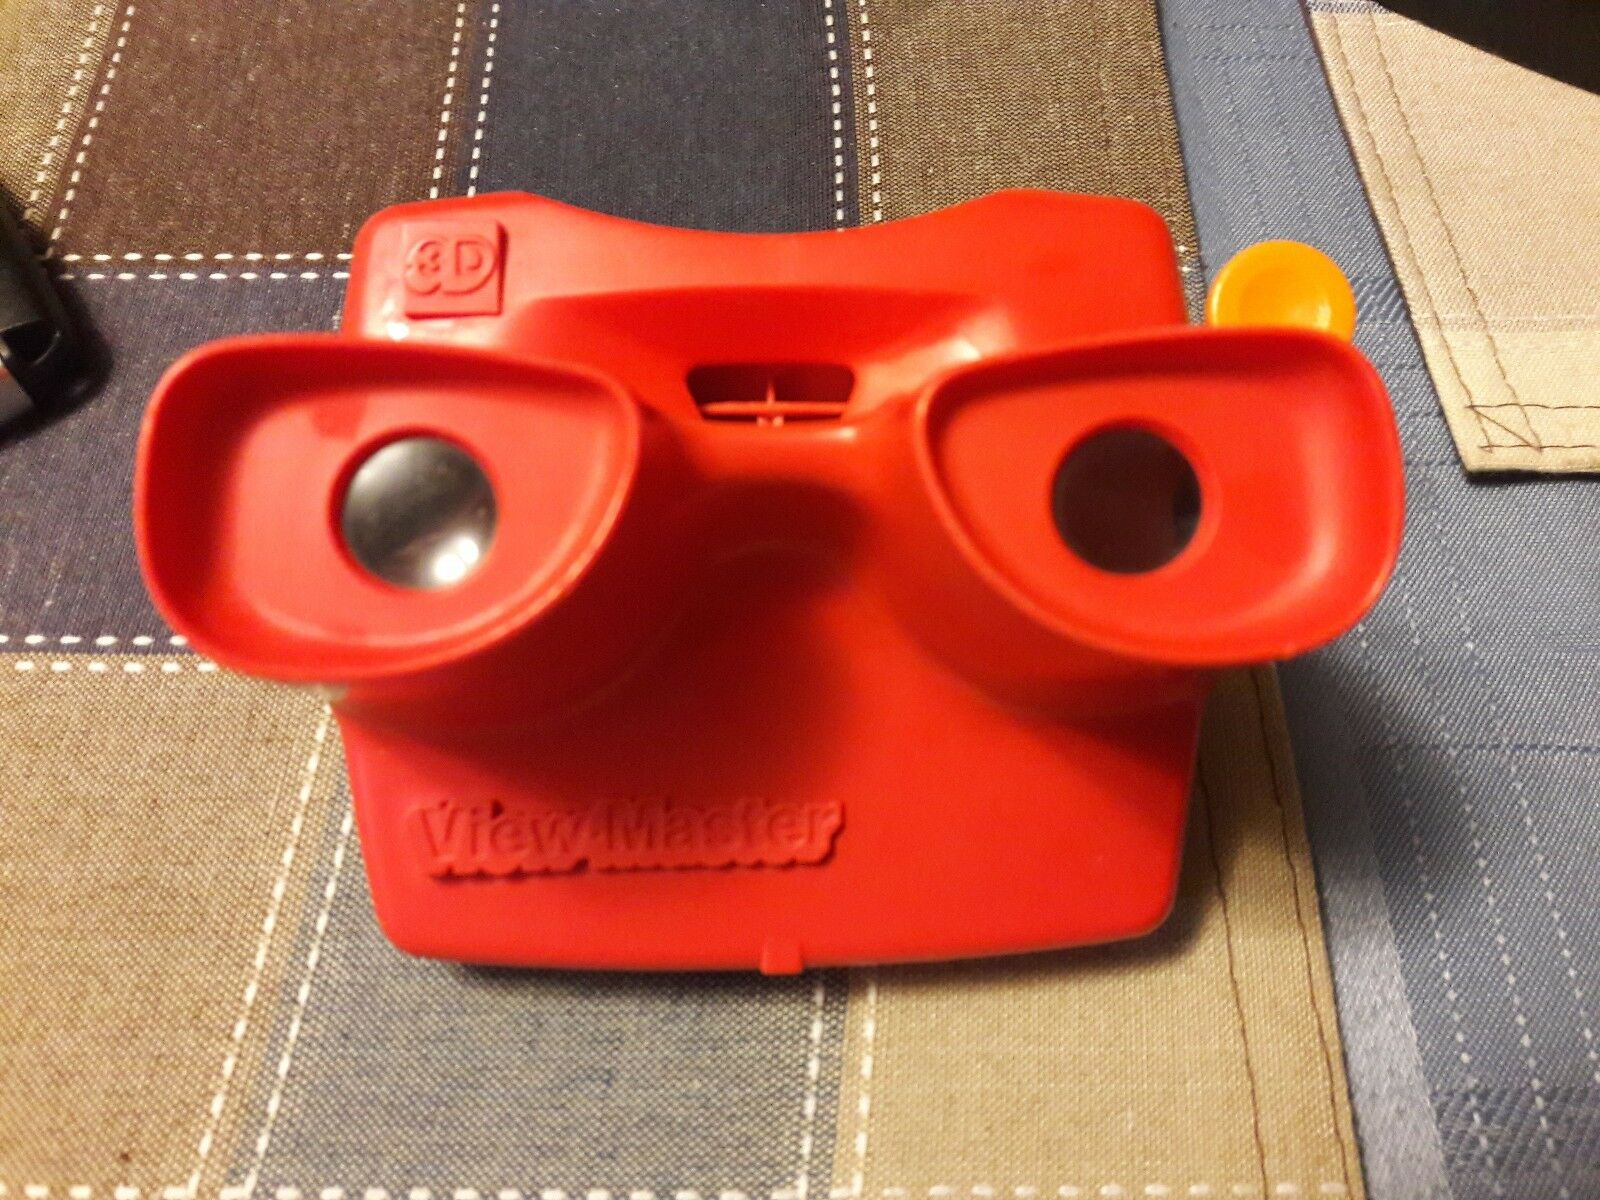 Vintage Red Viewmaster Viewmaster Viewmaster 3D View-Master Viewer Toy db85a9